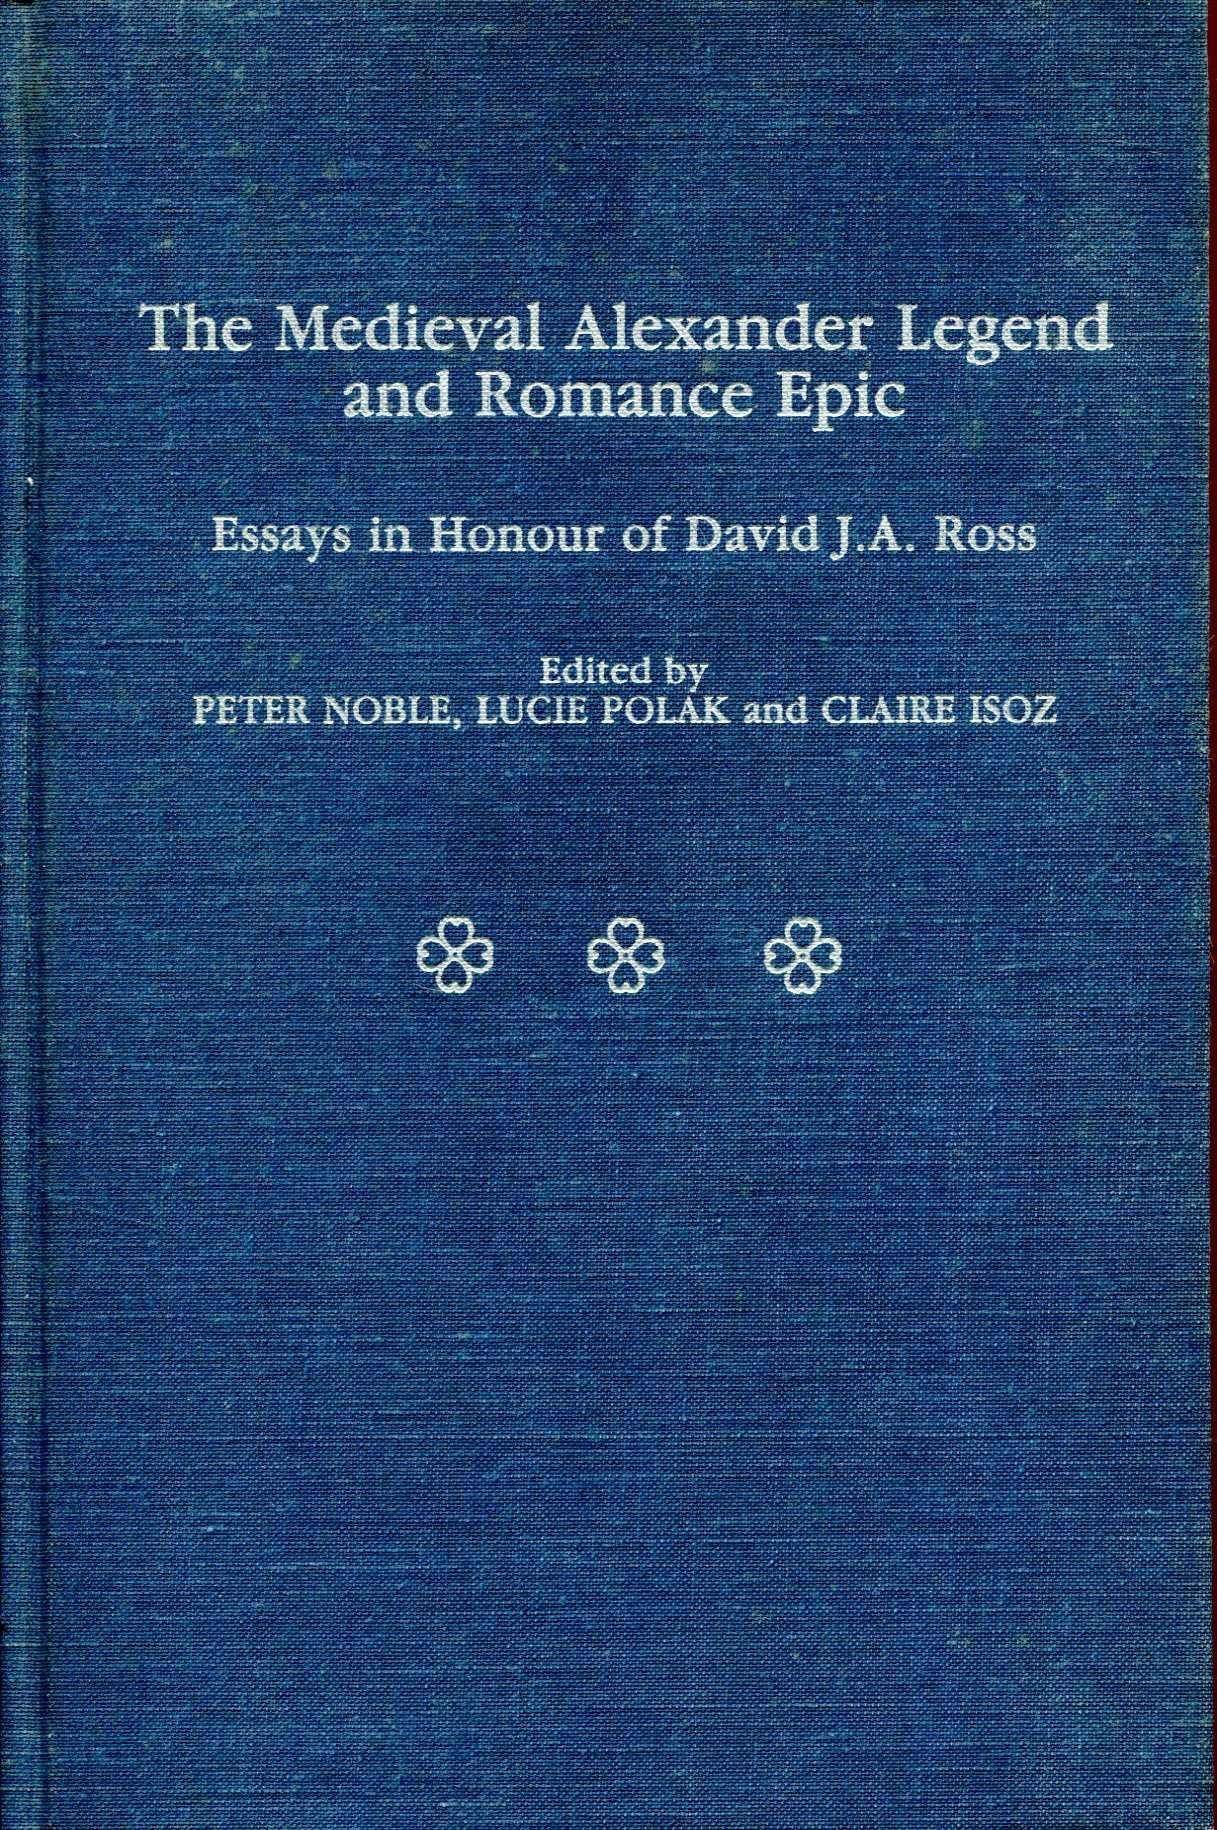 Image for The Medieval Alexander Legend and Romance Epic : Essays in Honour of David J.A. Ross